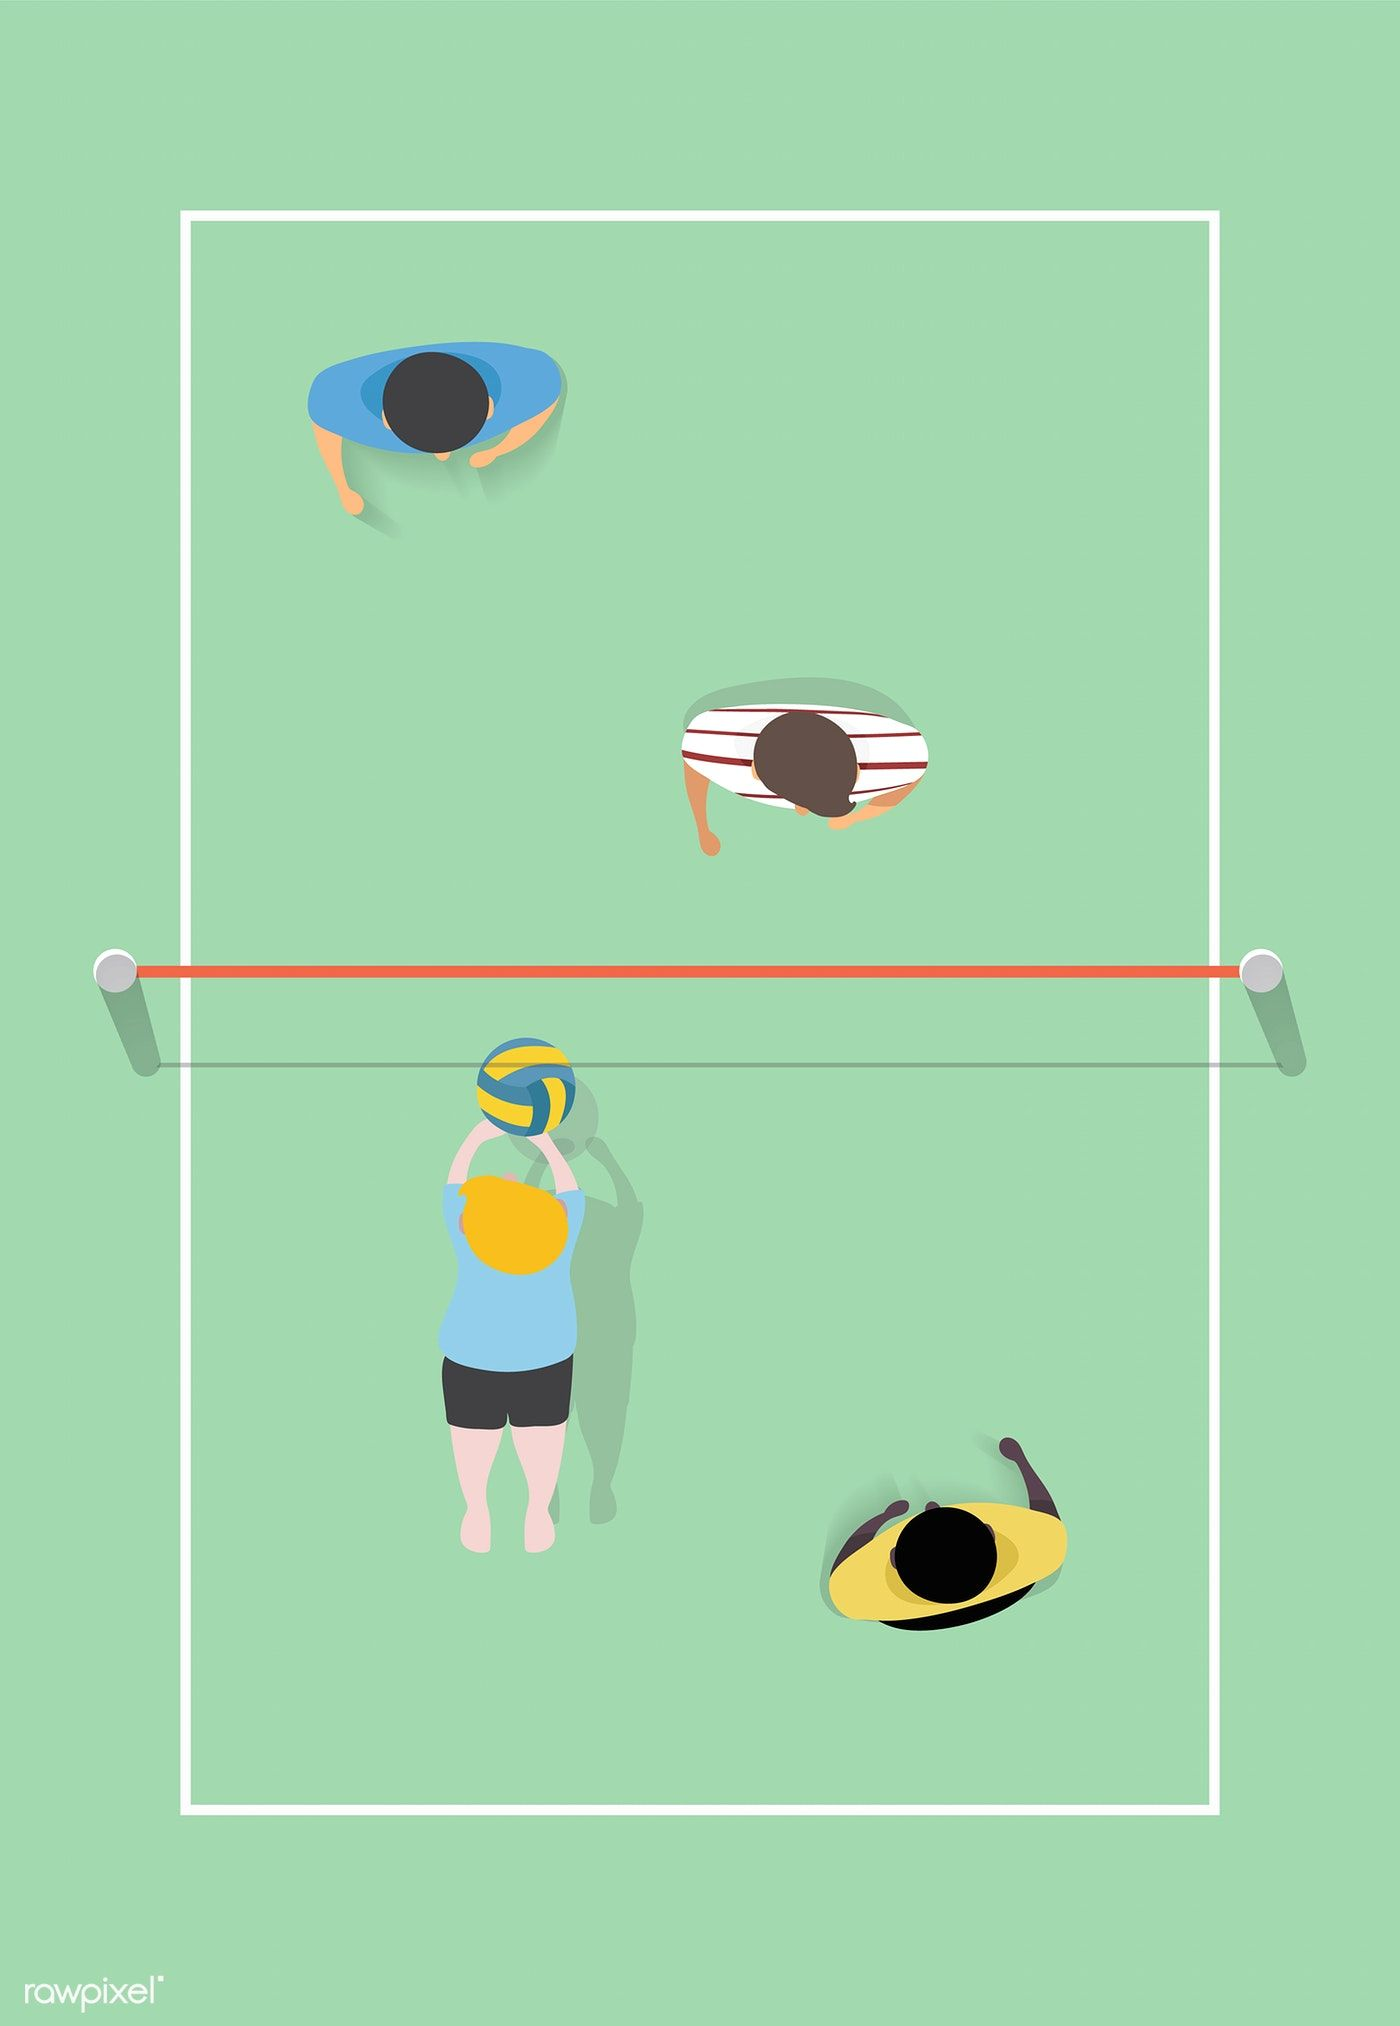 Download Premium Vector Of Vector Of People Playing Volleyball 2977 Free Illustrations Volleyball Vector